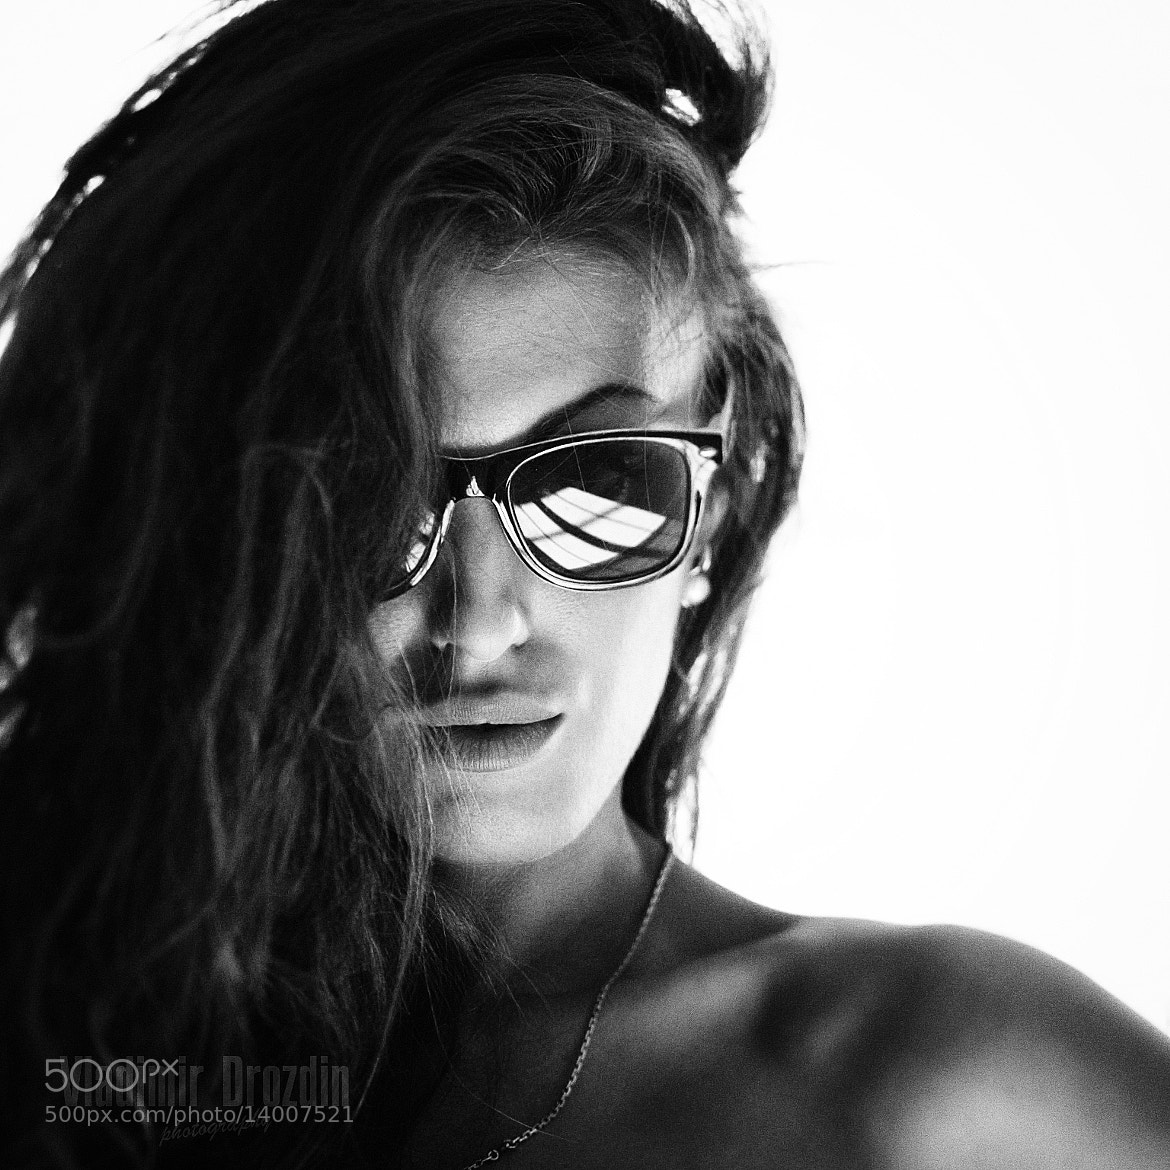 Photograph Ekaterina 05 by Vladimir Drozdin on 500px